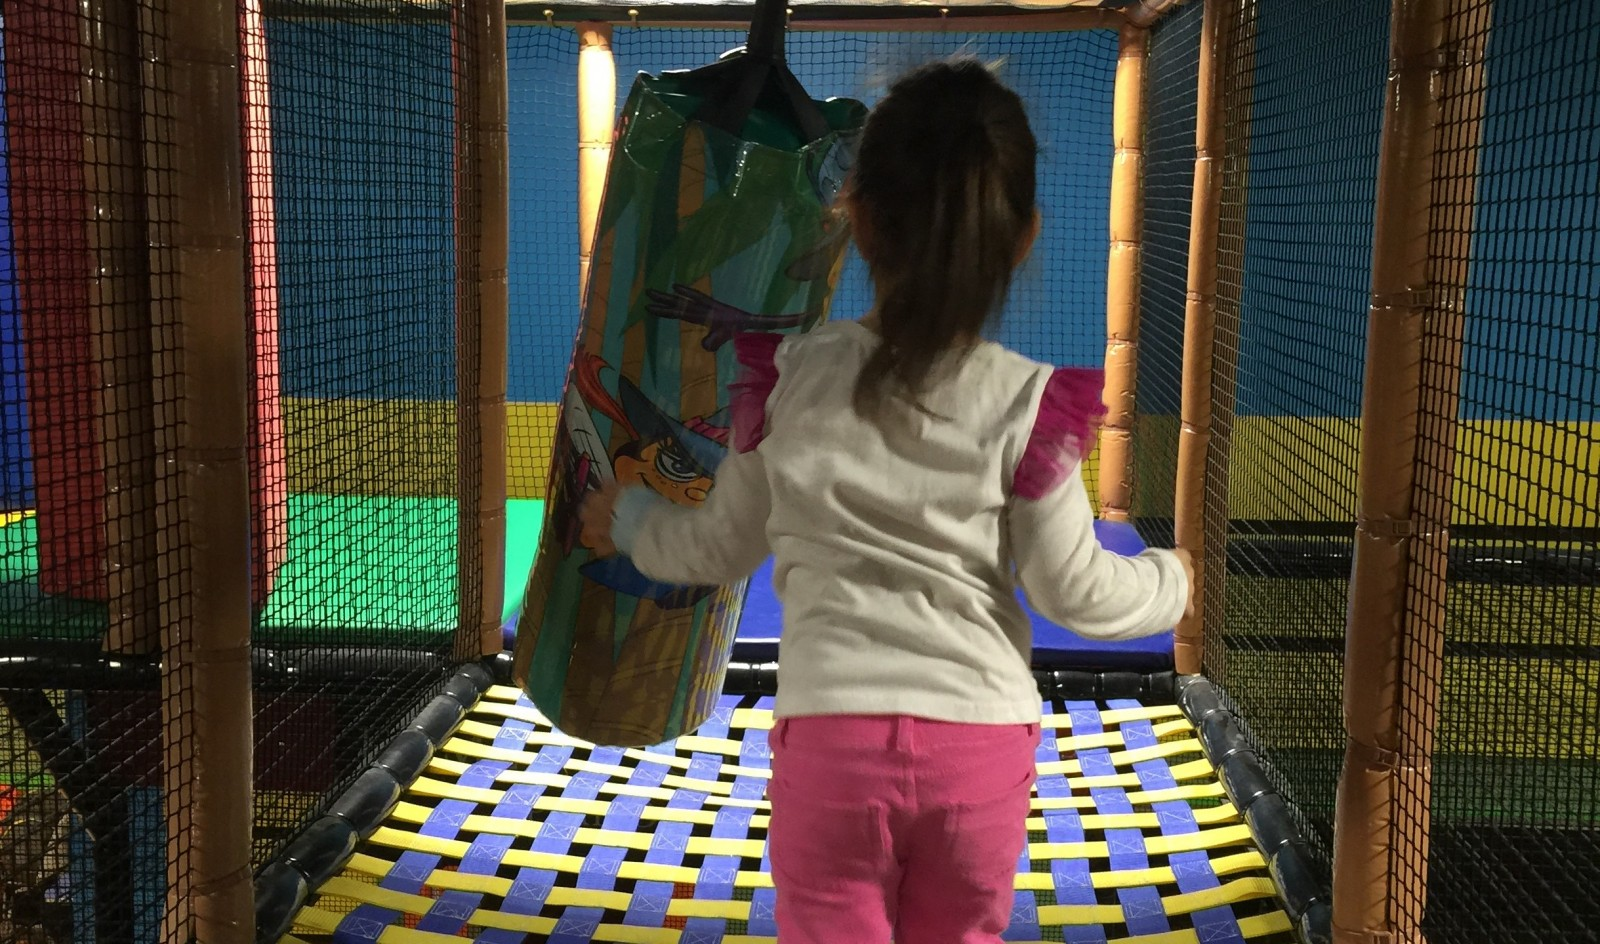 Kids can run and play all day at Billy Beez in the Walden Galleria. (Photo by Mary Friona-Celani)